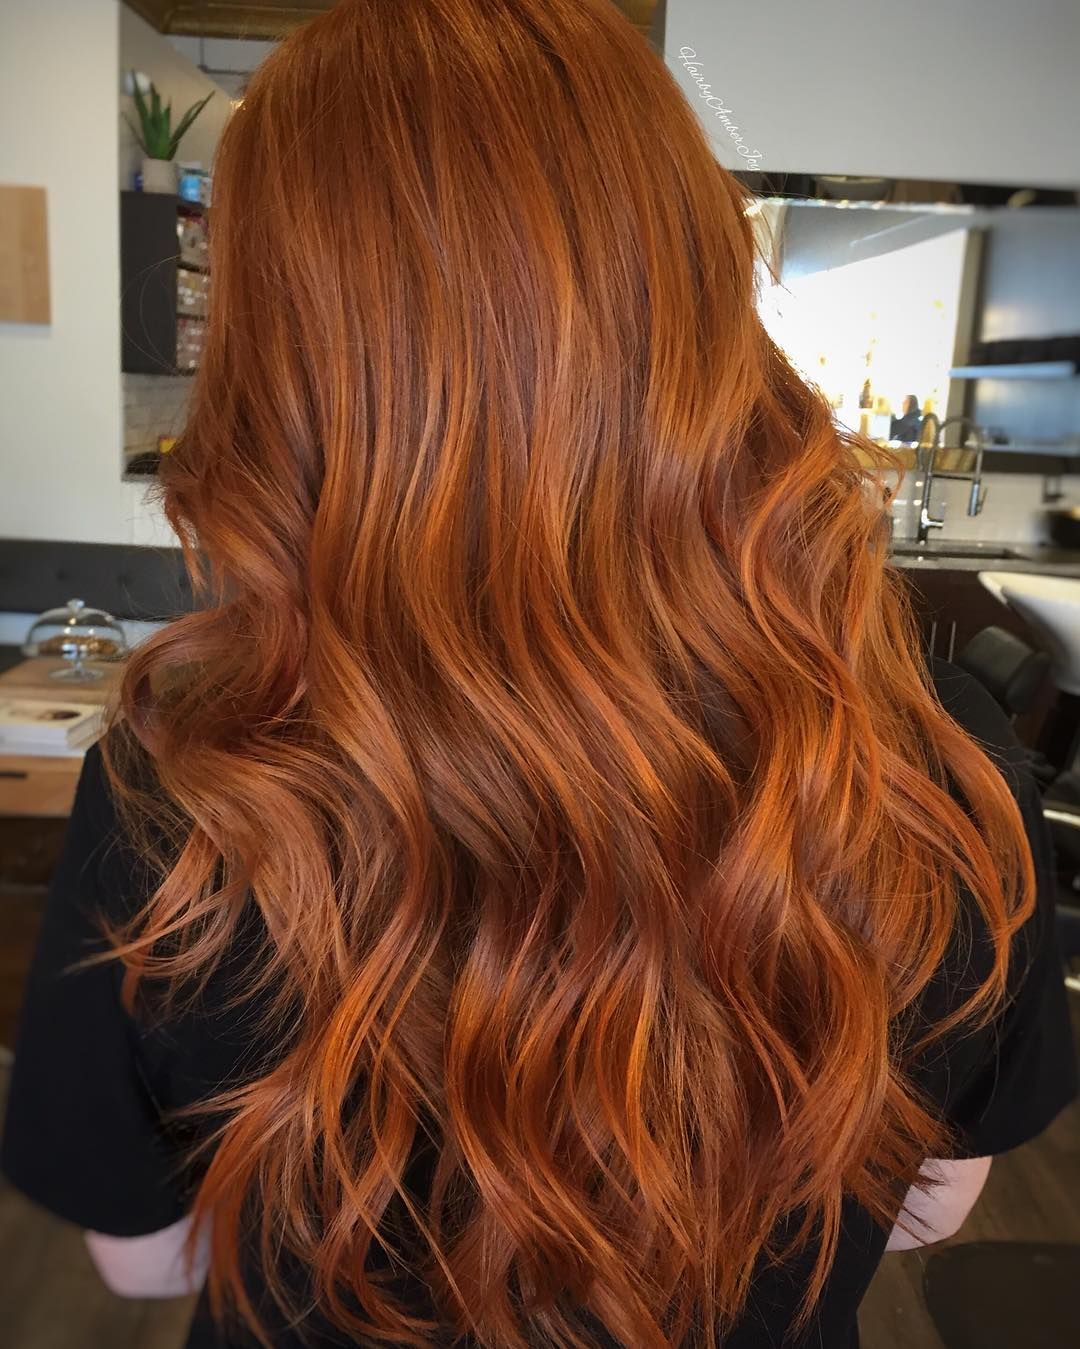 BRAVE Brought chelseamcm natural ginger color back to life with